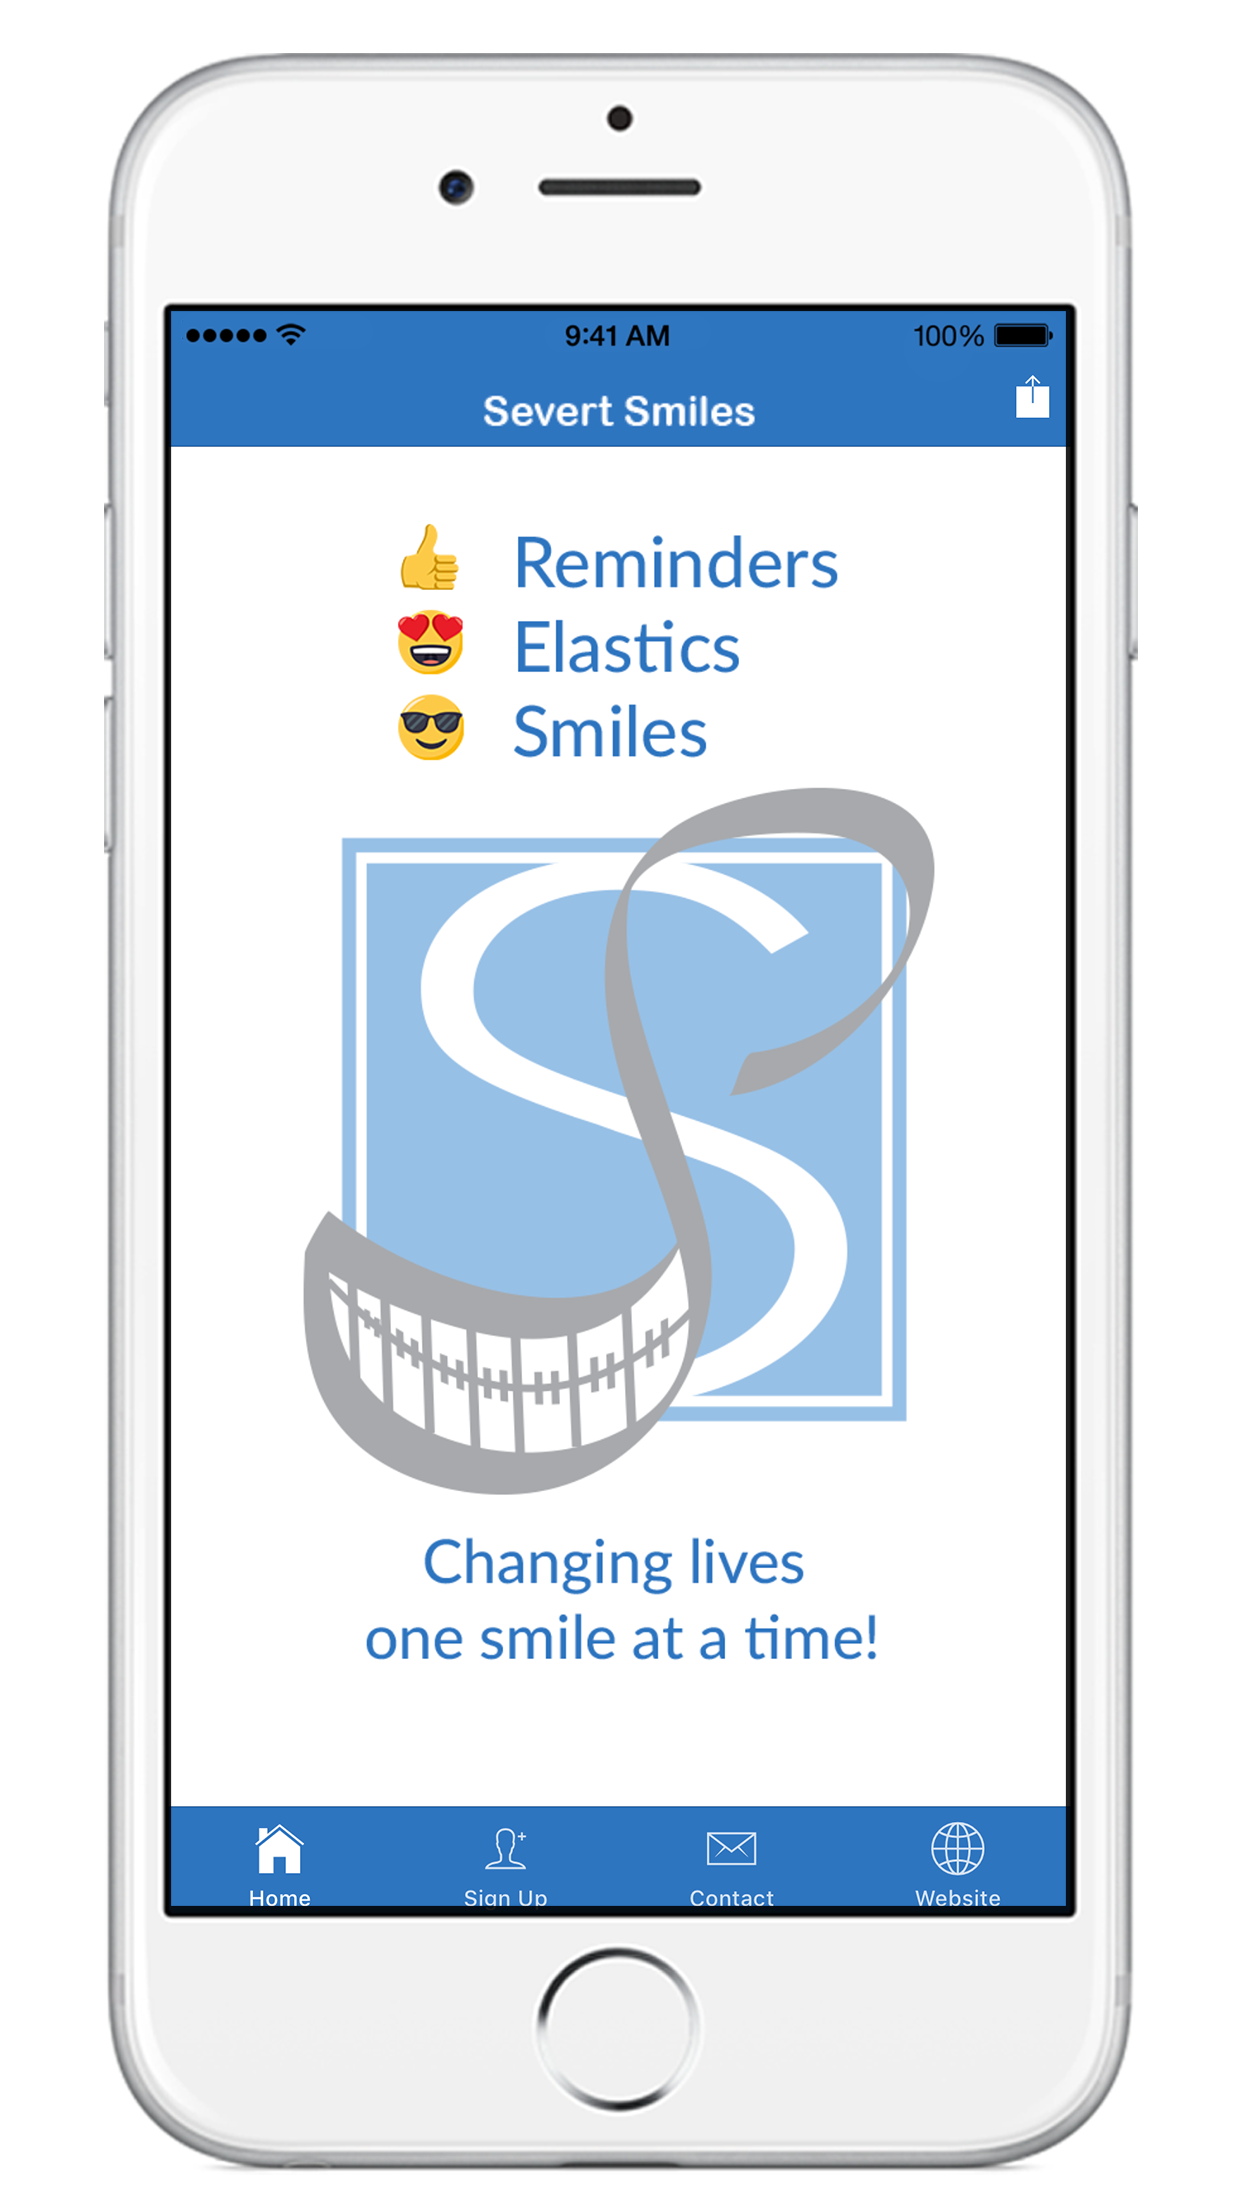 image of iPhone with Severt Smiles app